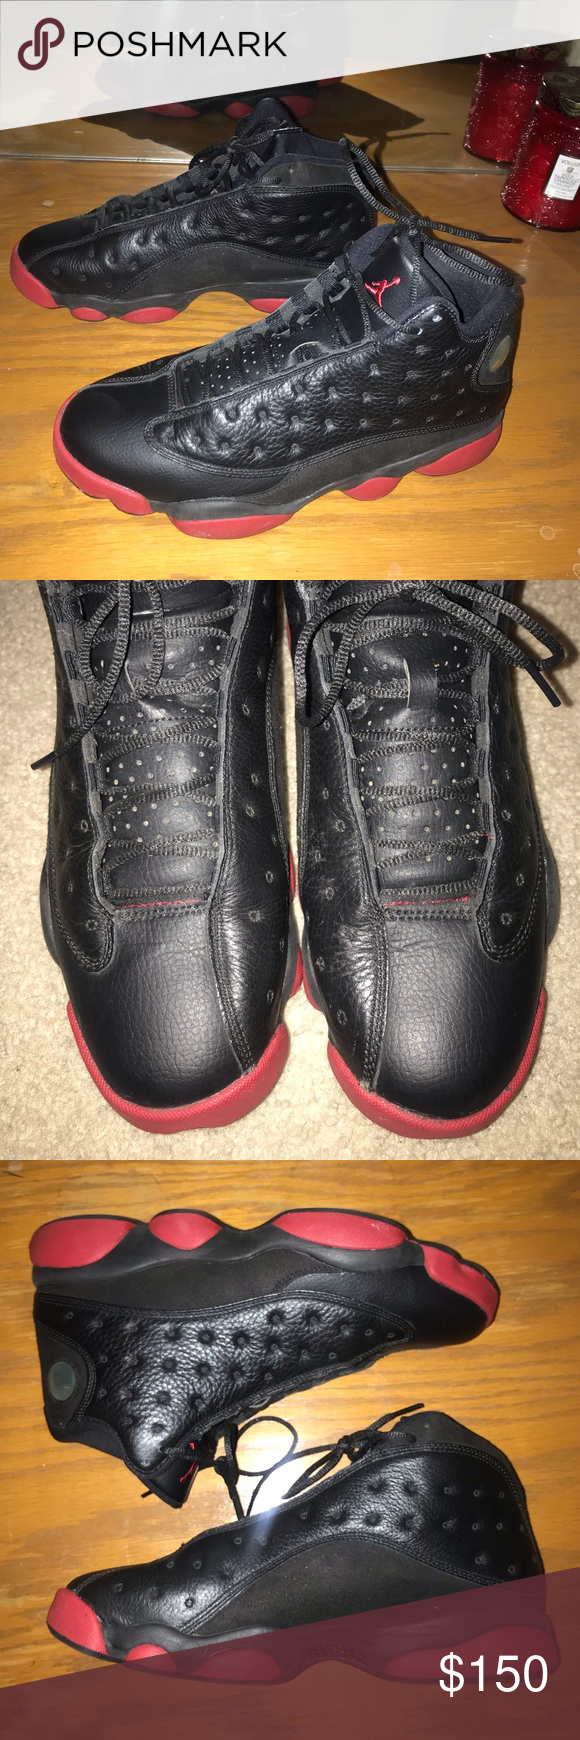 Men s Air Jordan 13 released 2014 Air Jordan 13 black red released December  2014 a164c76e7274